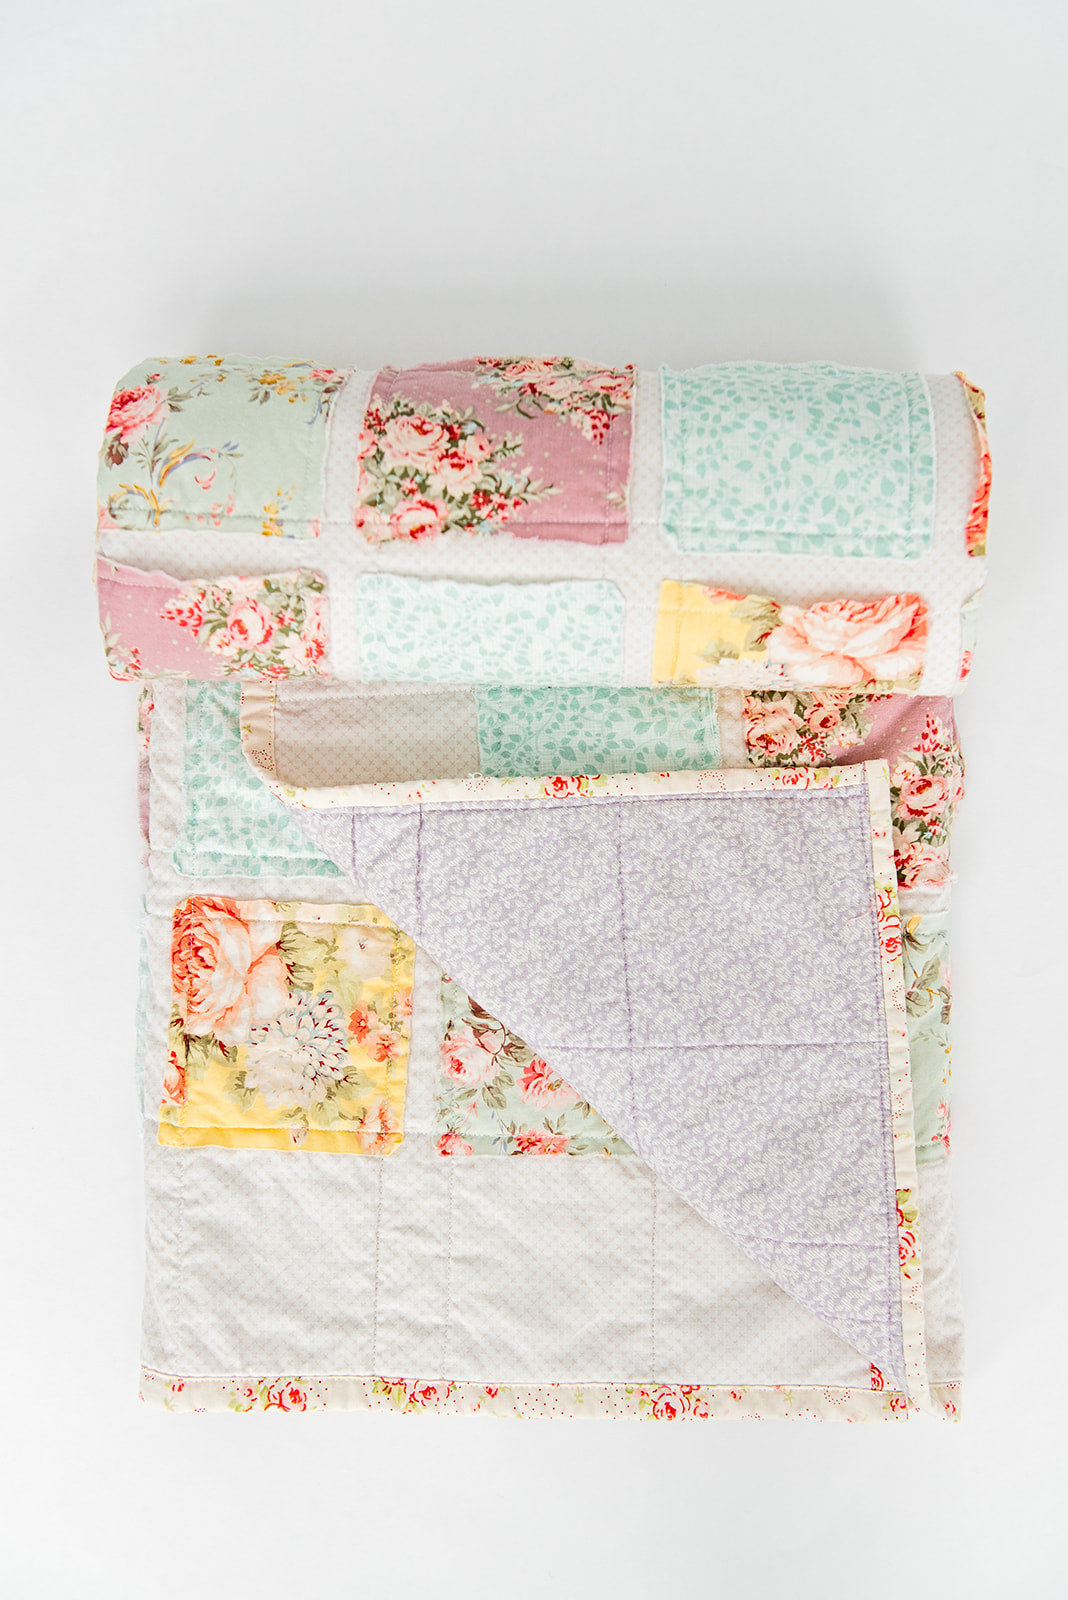 mint-pink-lavender-girly-floral-quilt-handmade-baby-blanket